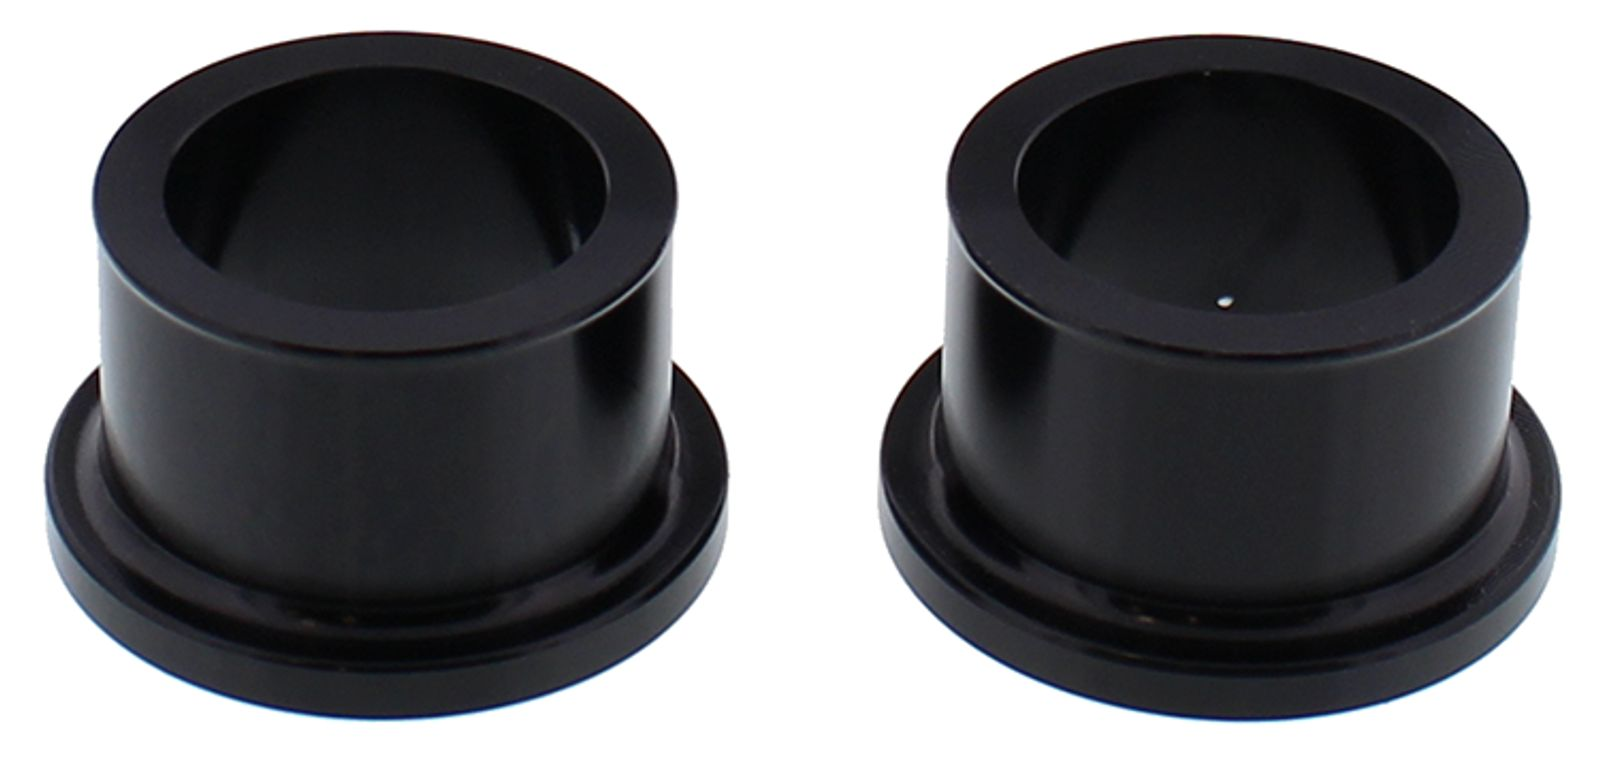 wrp rear wheel spacer kits - WRP111015-1 image